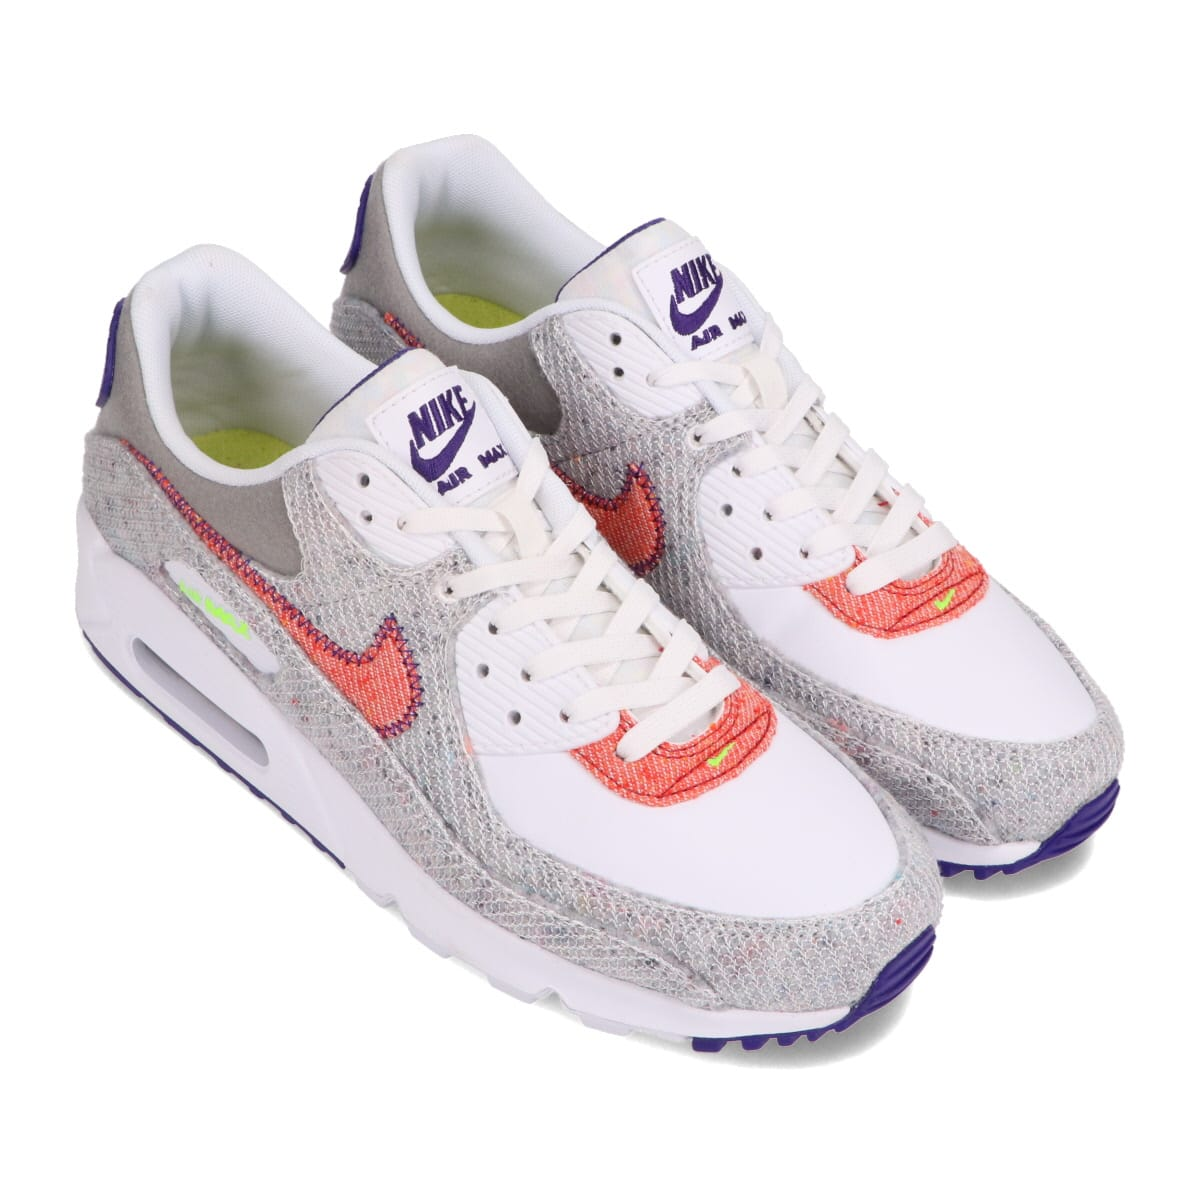 NIKE AIR MAX 90 WHITE/ELECTRIC GREEN-COURT PURPLE 20HO-I_photo_large